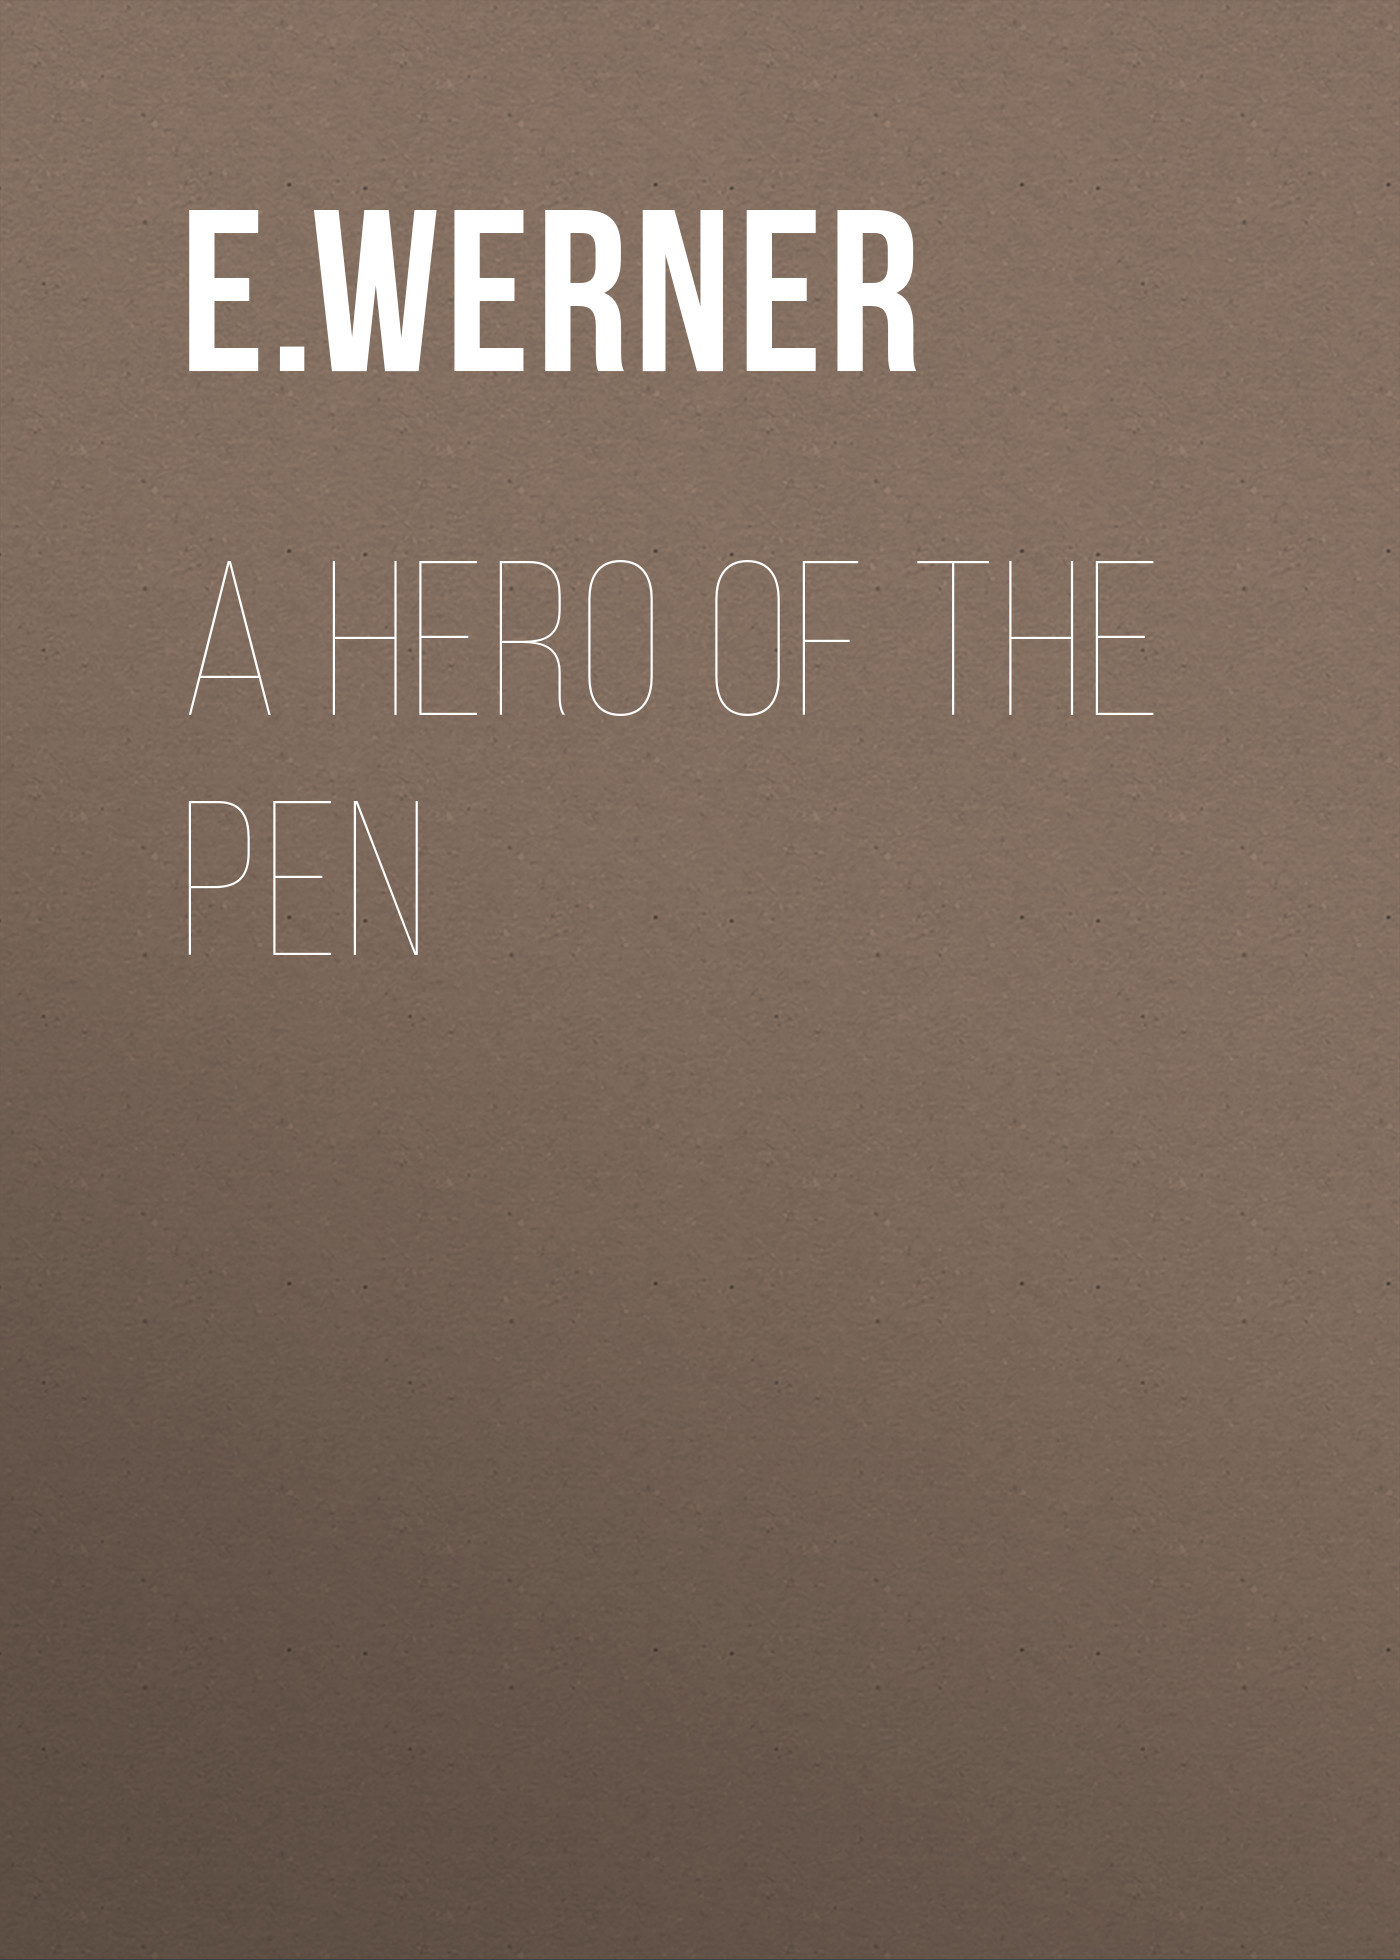 E. Werner A Hero of the Pen original bare lamp bulb ec j9000 001 for acer x1130 x1130k x1130p x1130pa x1130s x1230 x1230s x1237 projectors etc